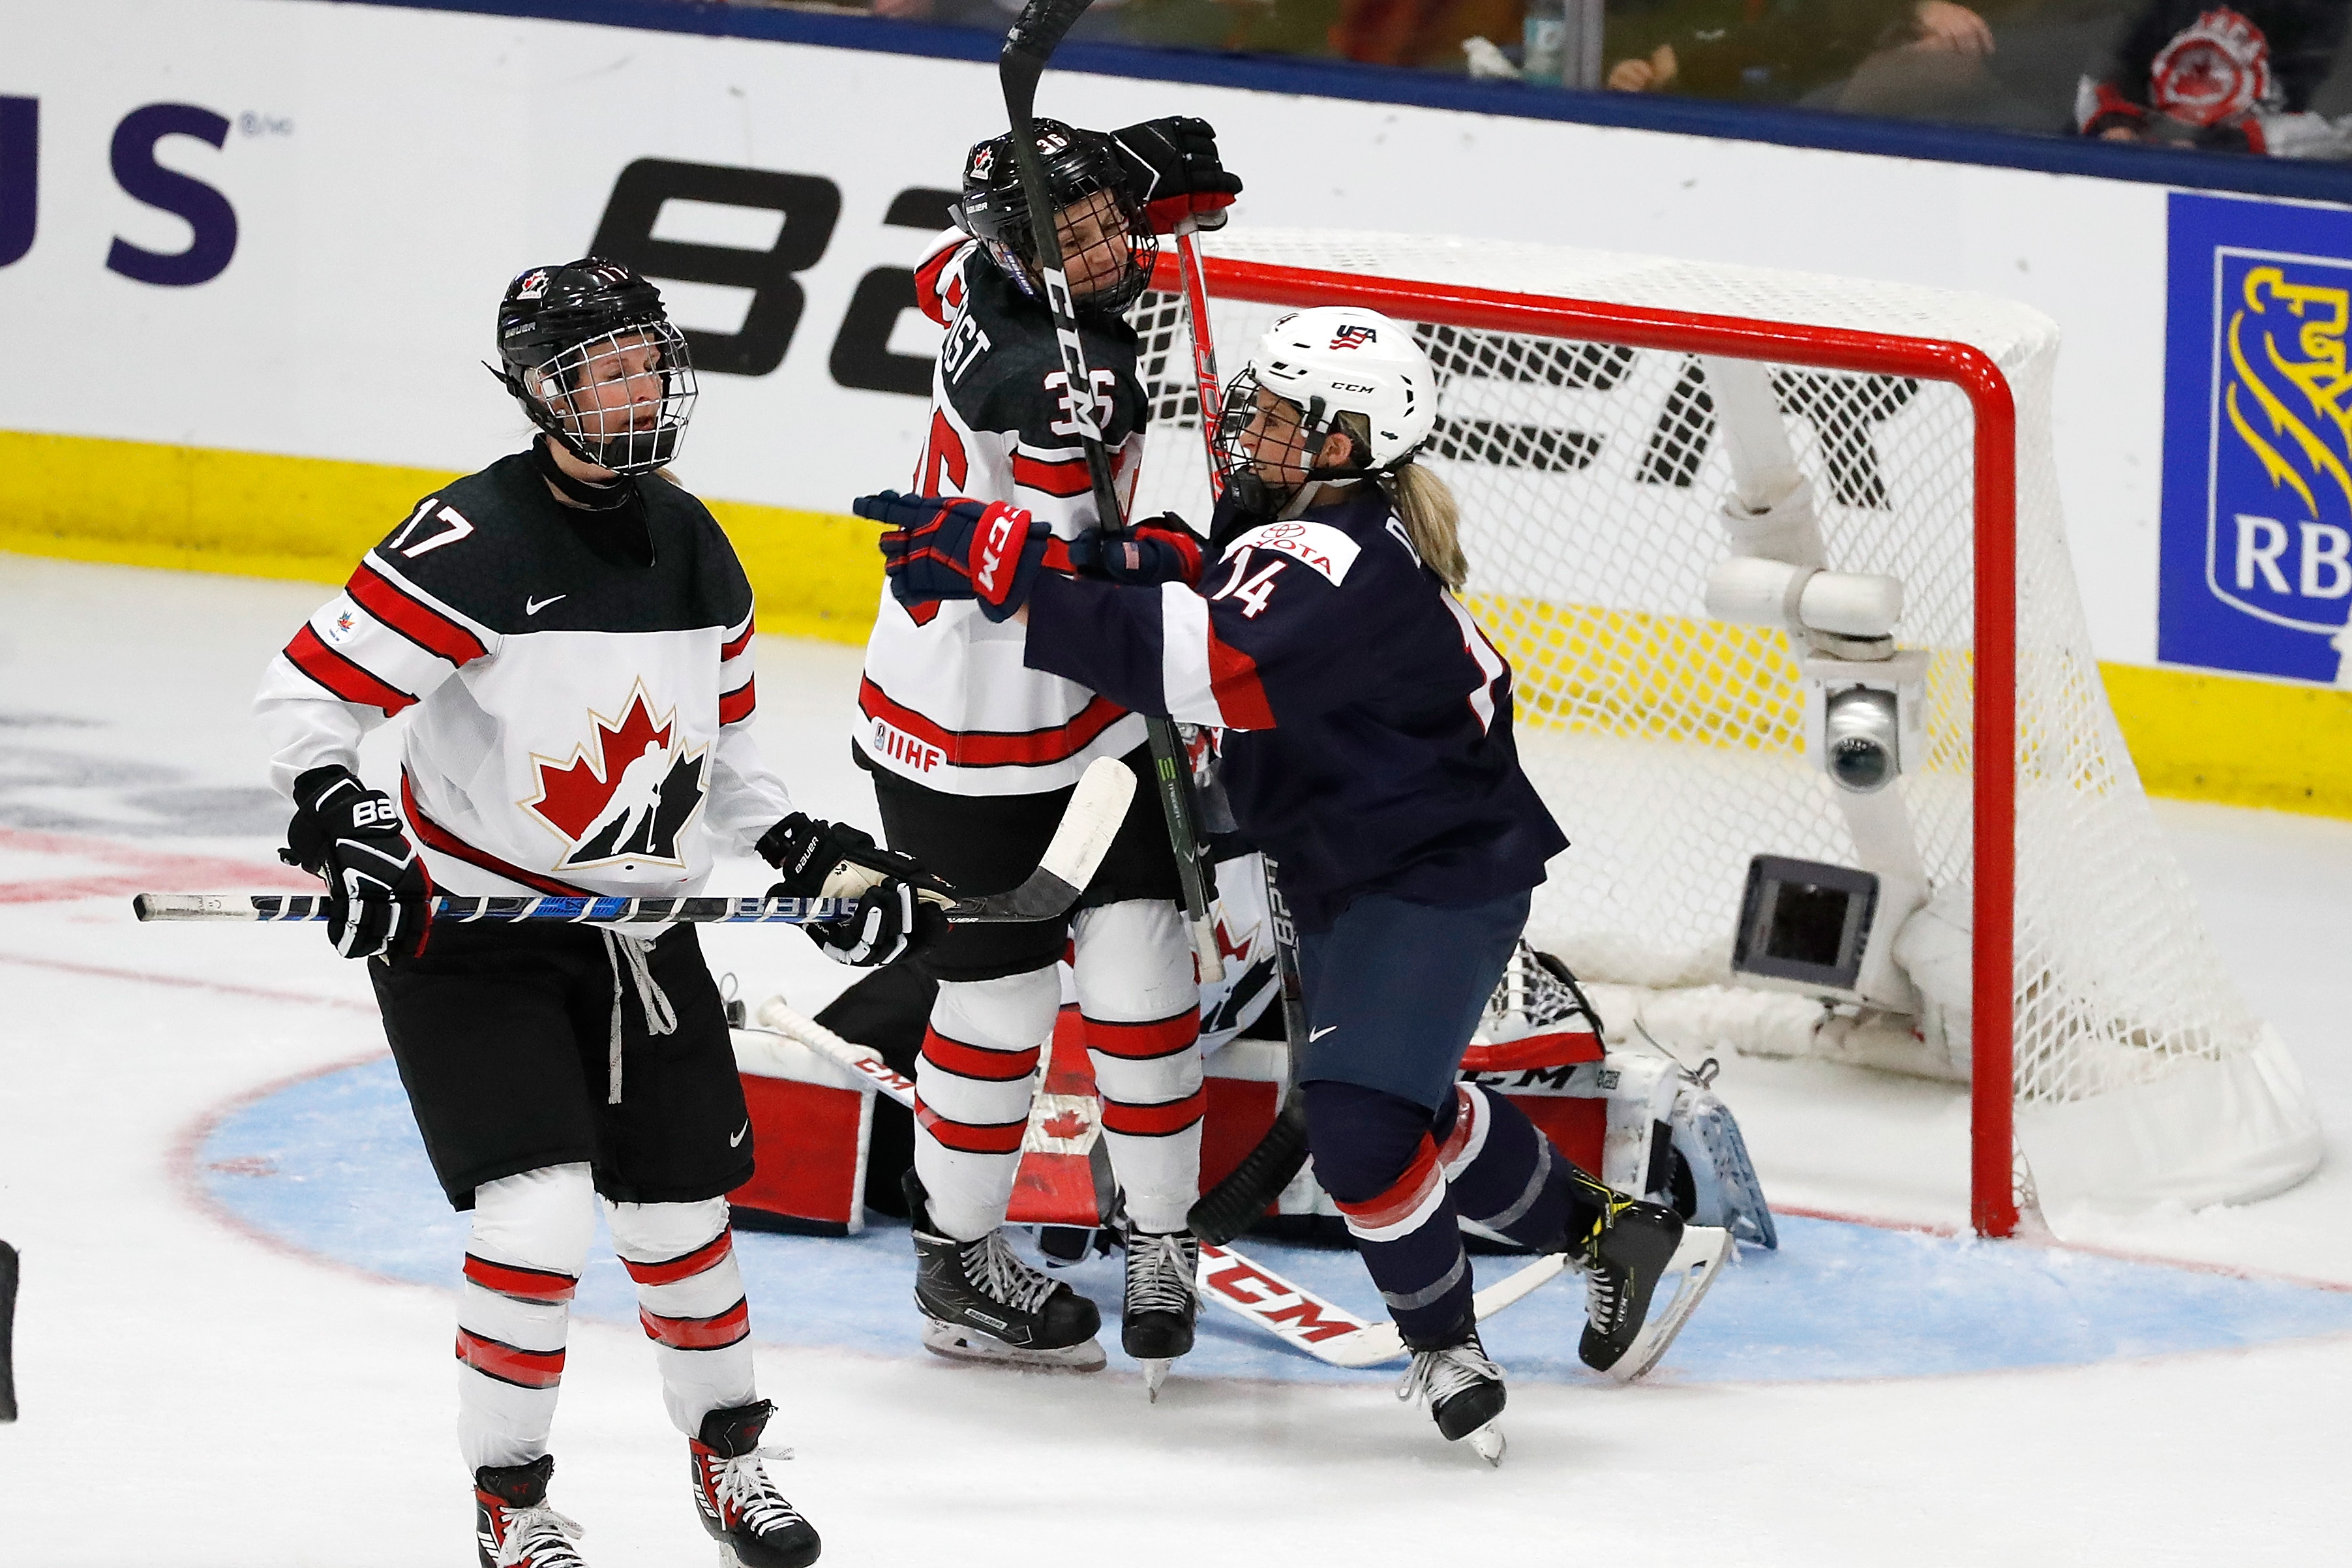 Brianna Decker opened the scoring for Team USA at the IIHF World Championships. (Getty Images)